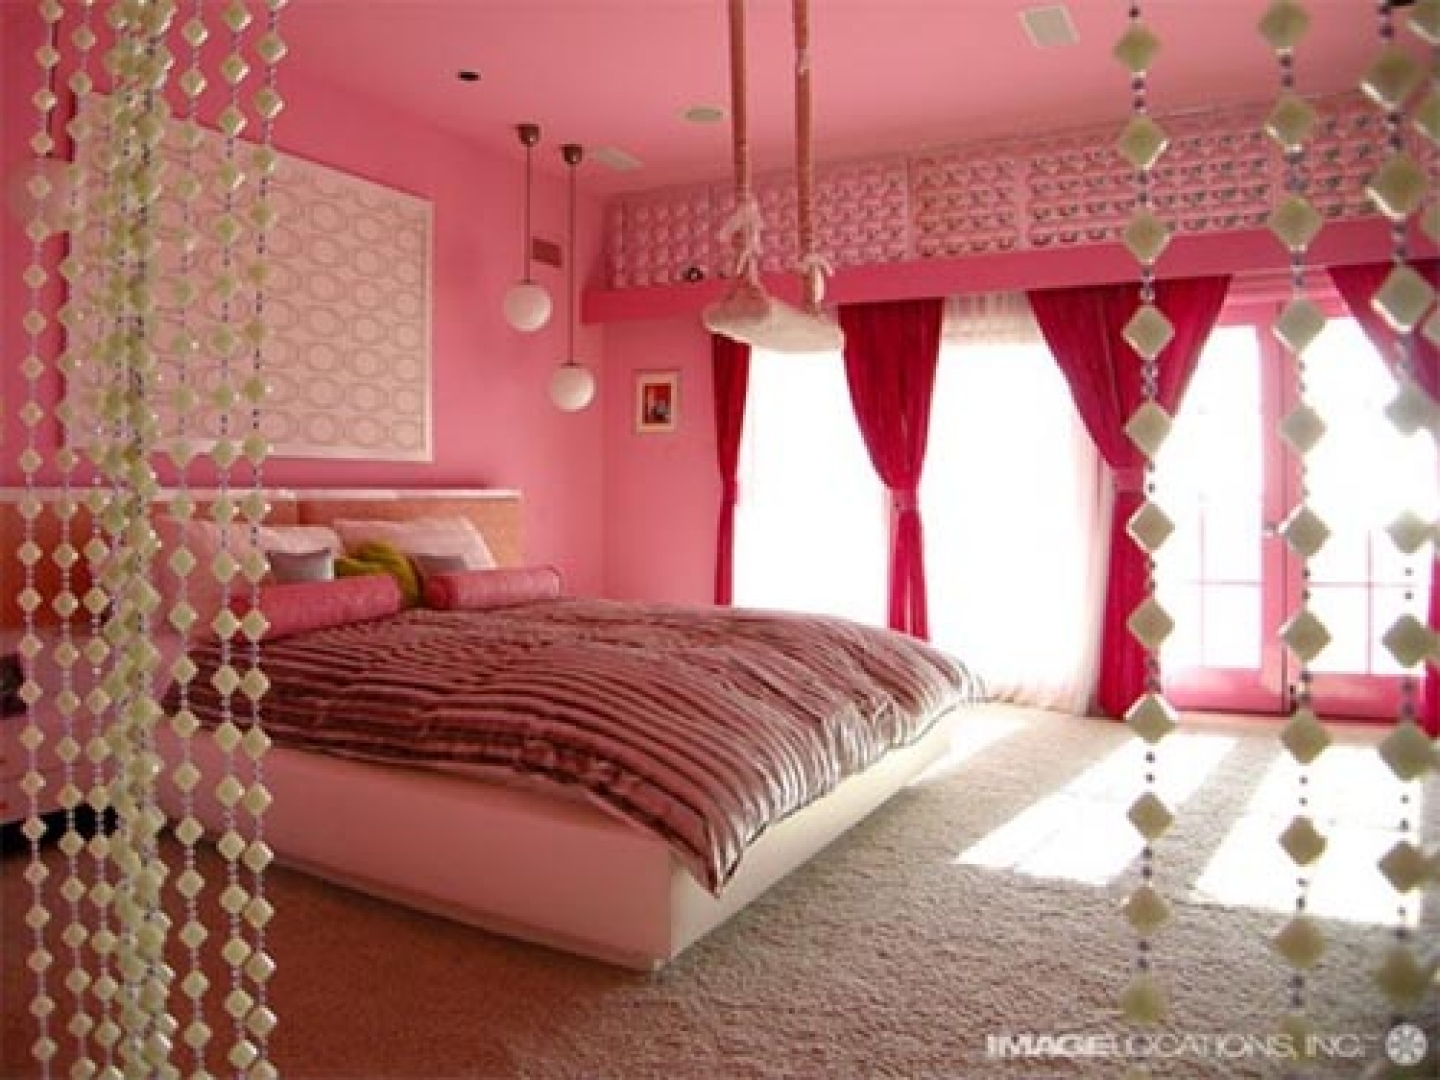 wallpapers designs for home interiors - Home Wallpaper Designs